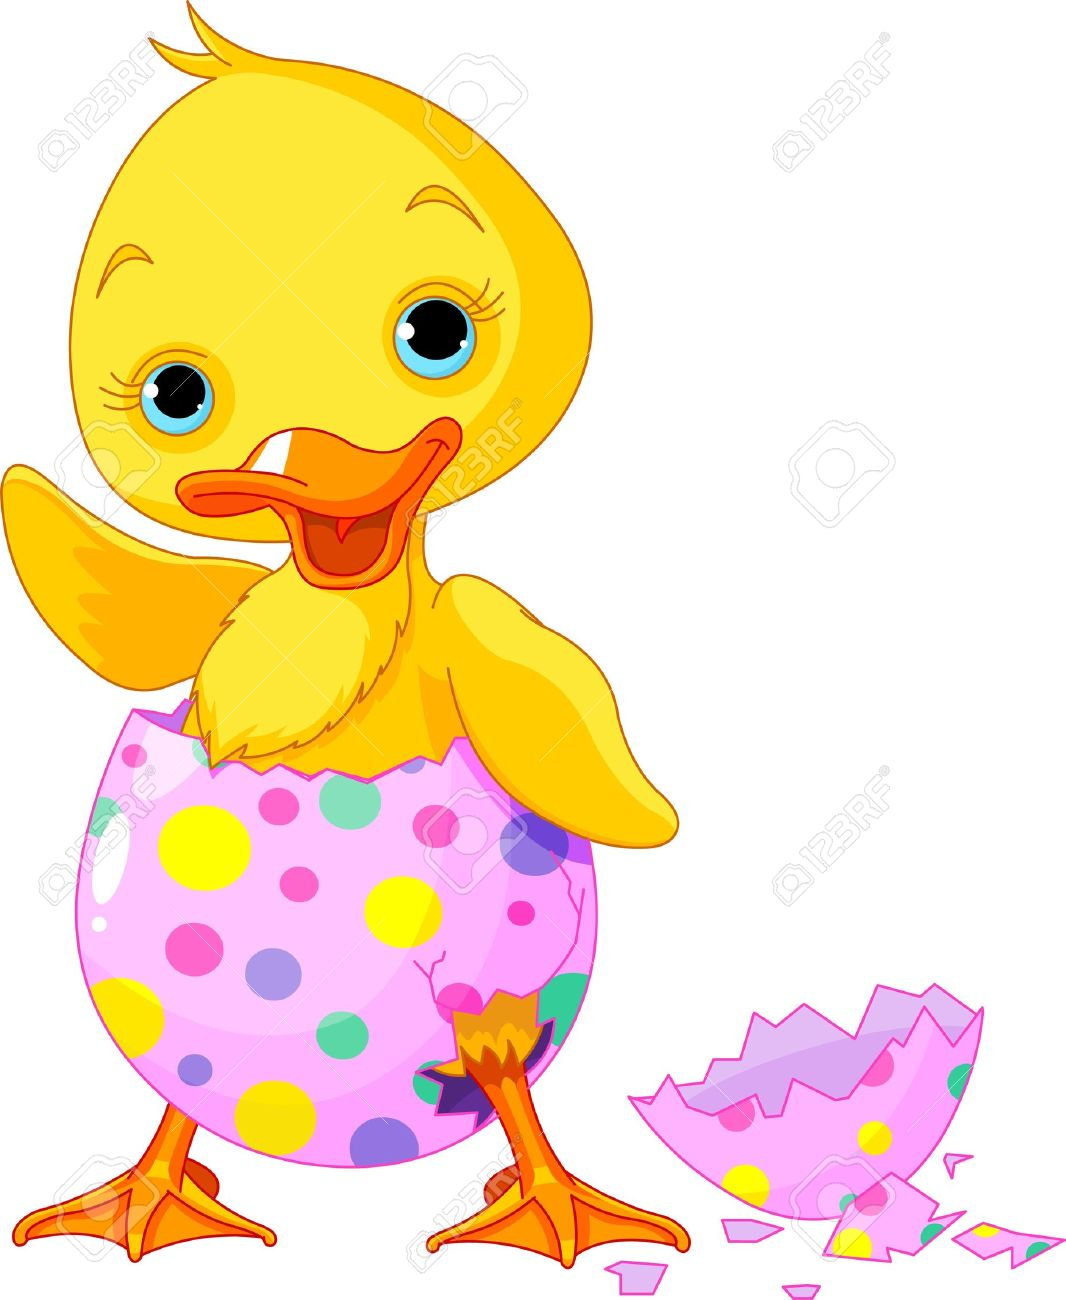 697 coloring duck cliparts stock vector and royalty free coloring